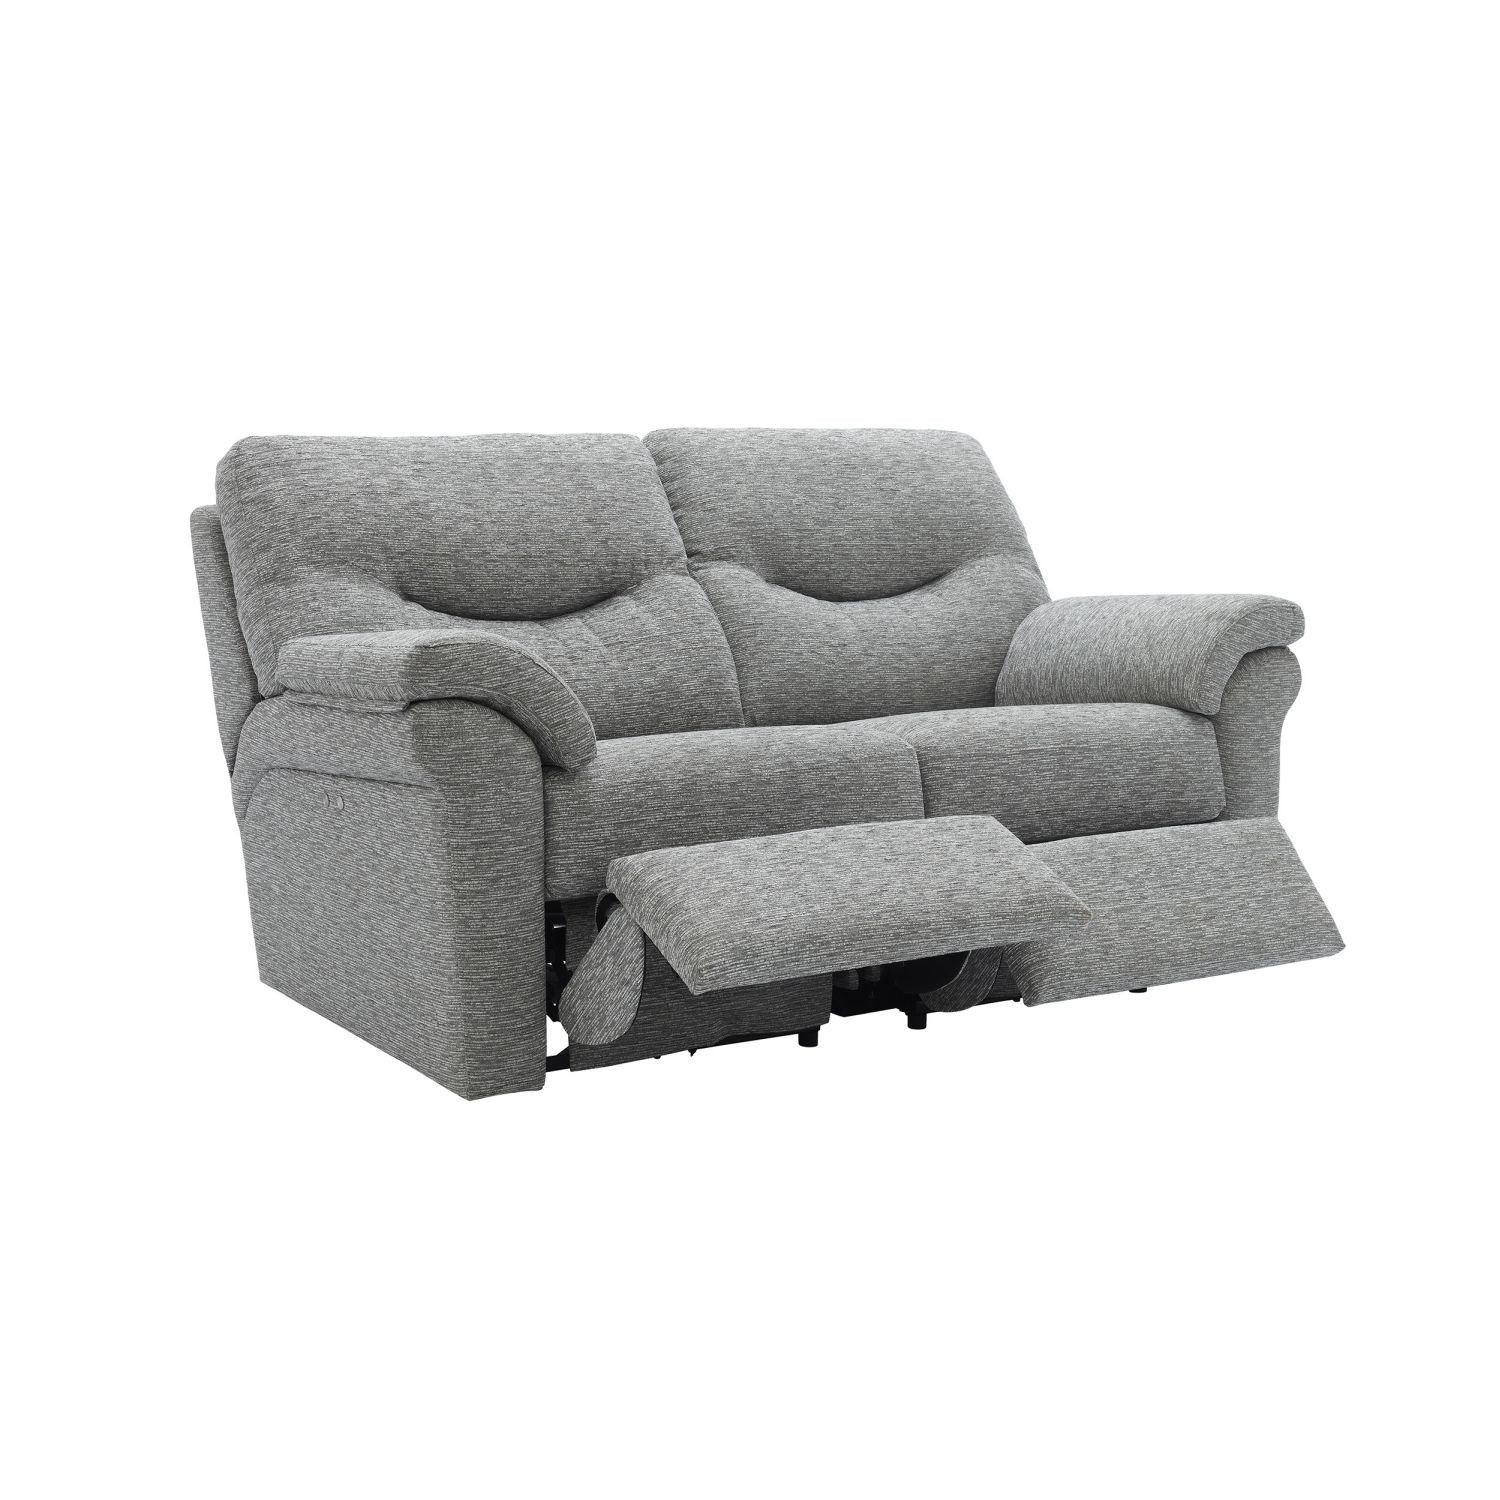 G Plan Upholstery Washington 2018 Two Seater Power Recliner